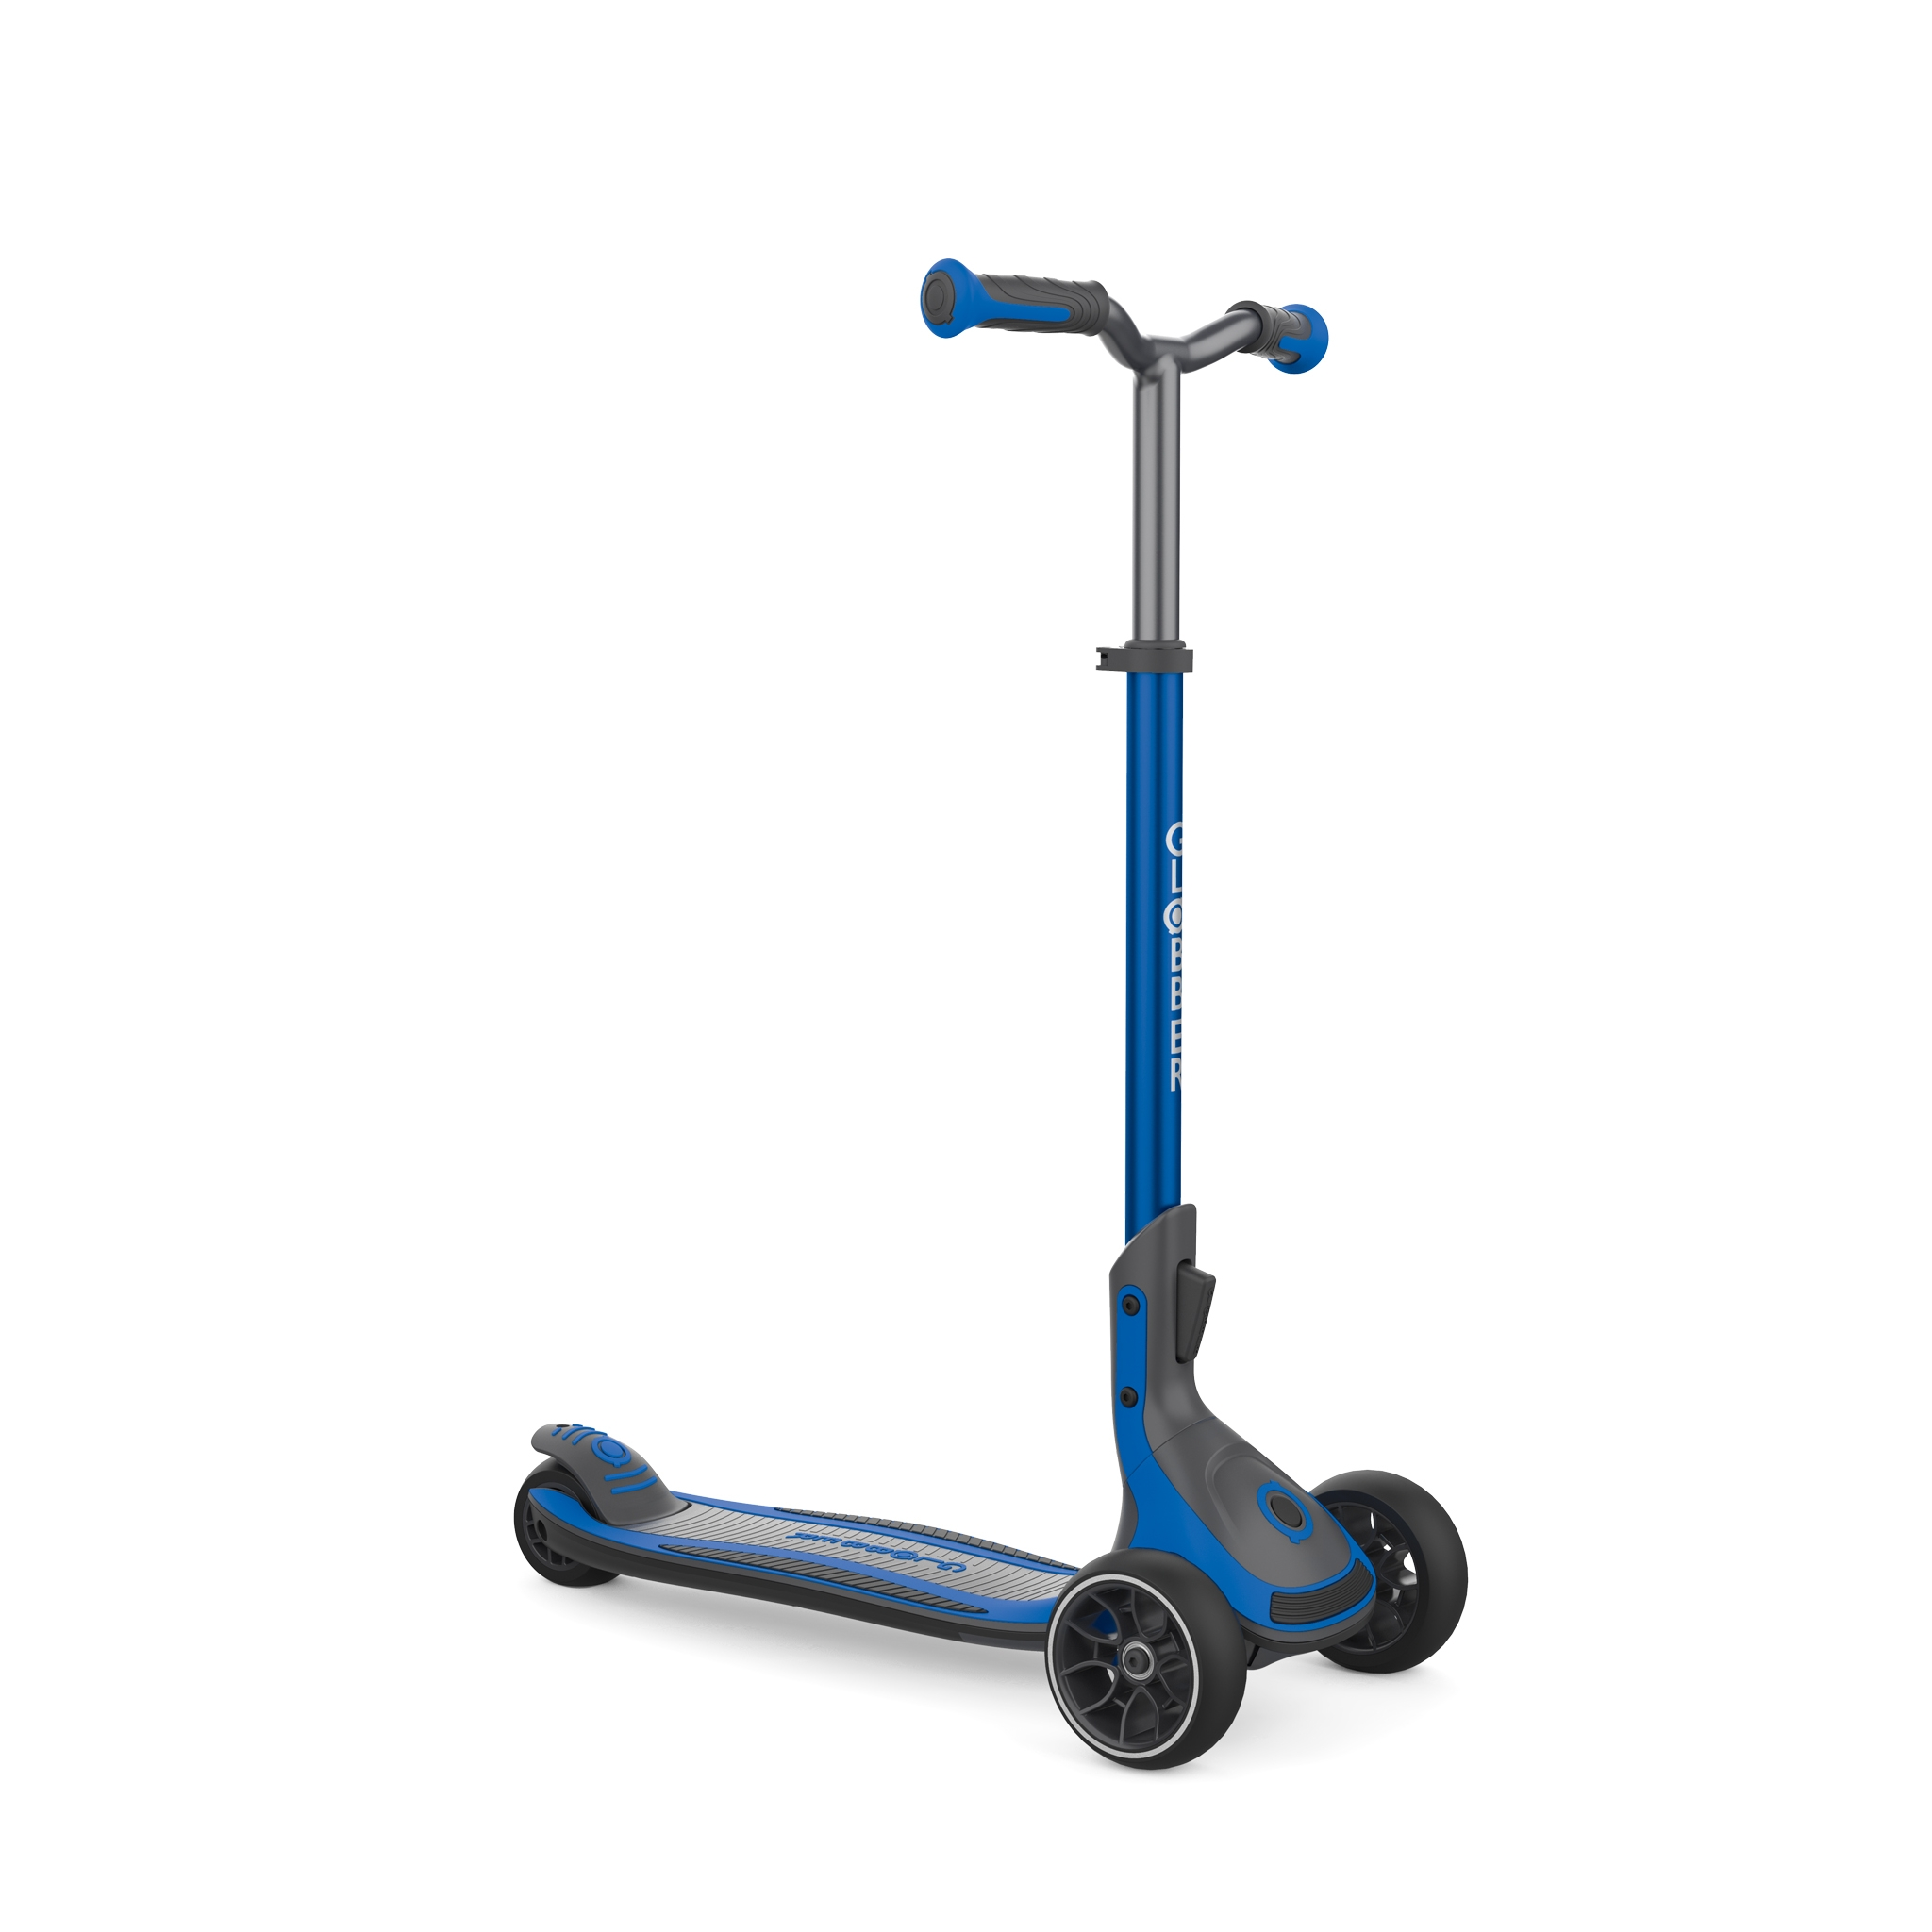 3 wheel foldable scooter for kids, teens and adults - Globber ULTIMUM